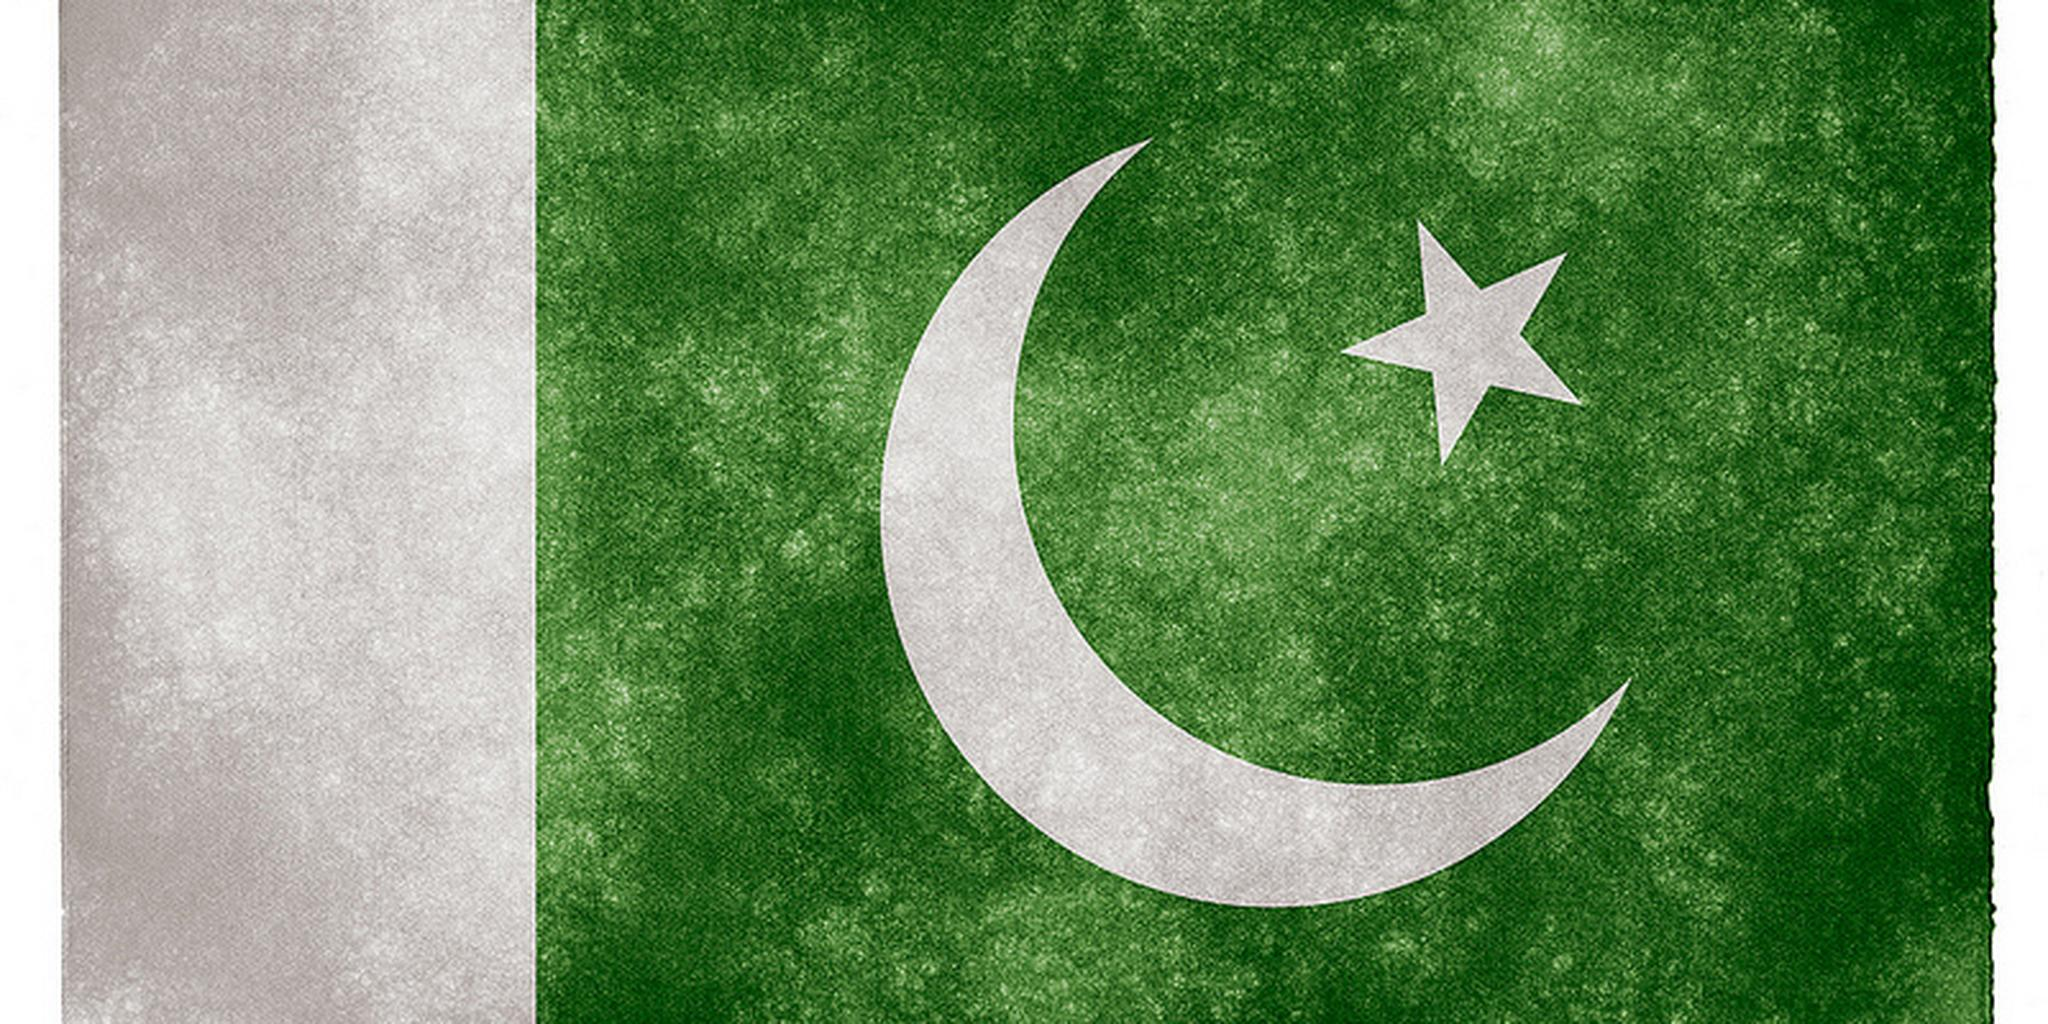 Pakistan Grunge Flag | Flickr - Photo Sharing!